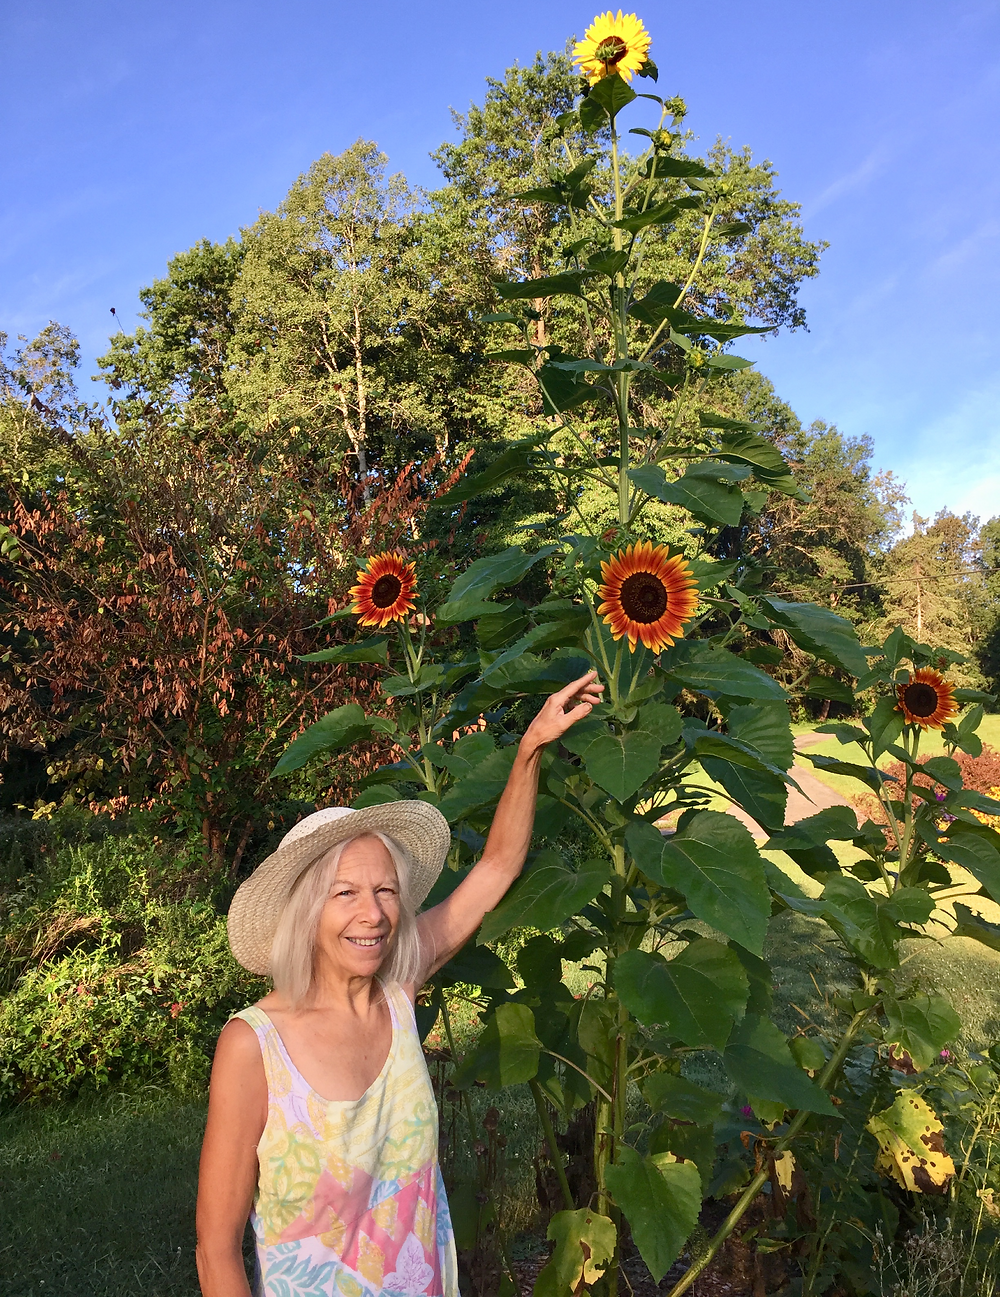 I may need a ladder to harvest the seeds from this sunflower plant!